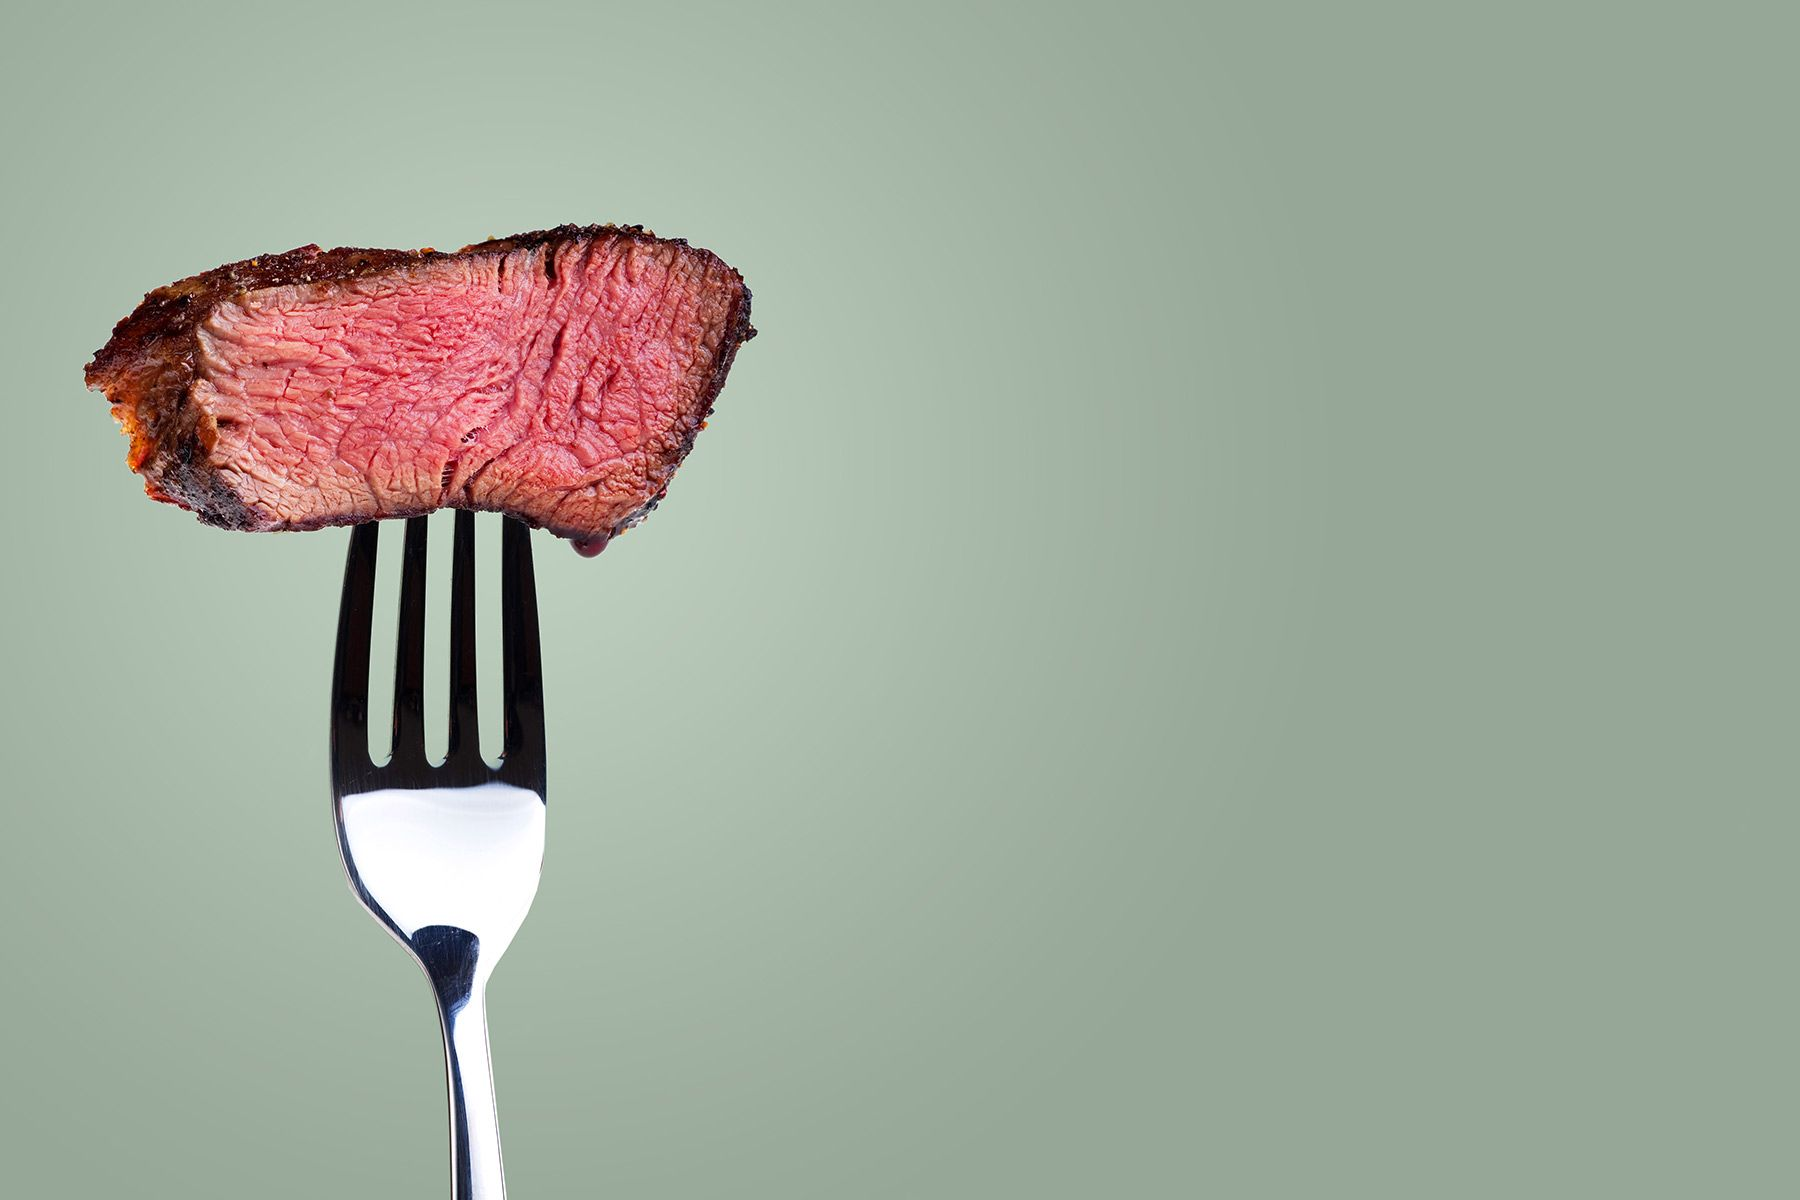 Relax, meat might not kill you after all